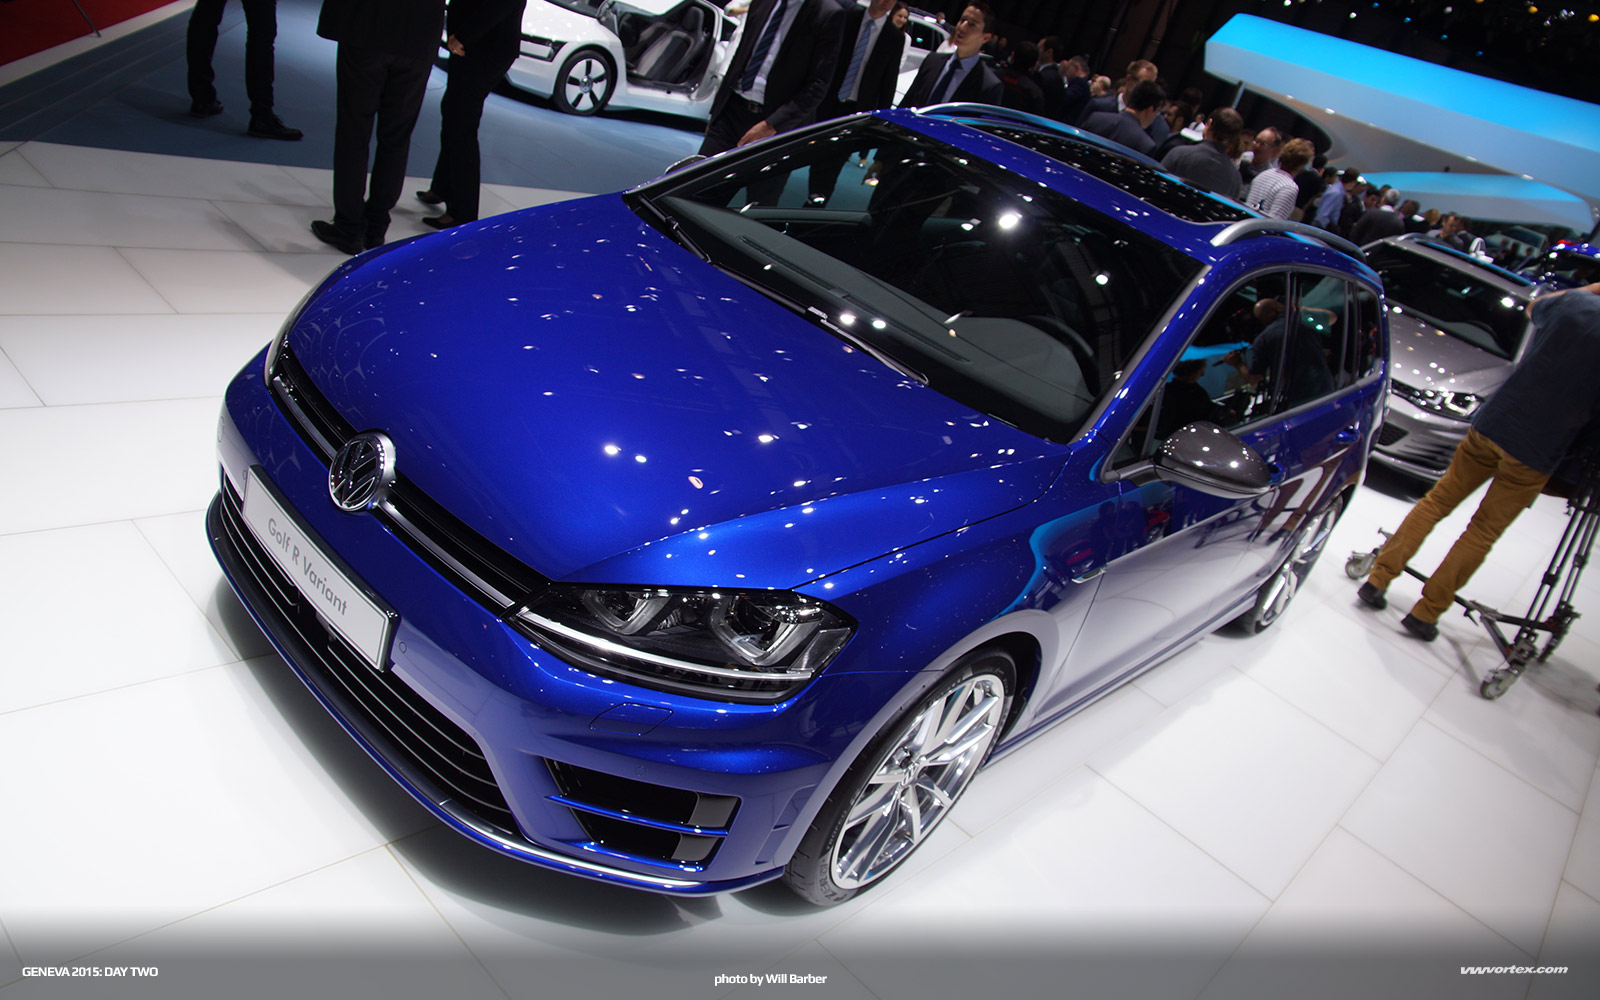 Geneva-2015-Day-Two-Volkswagen-Group-776